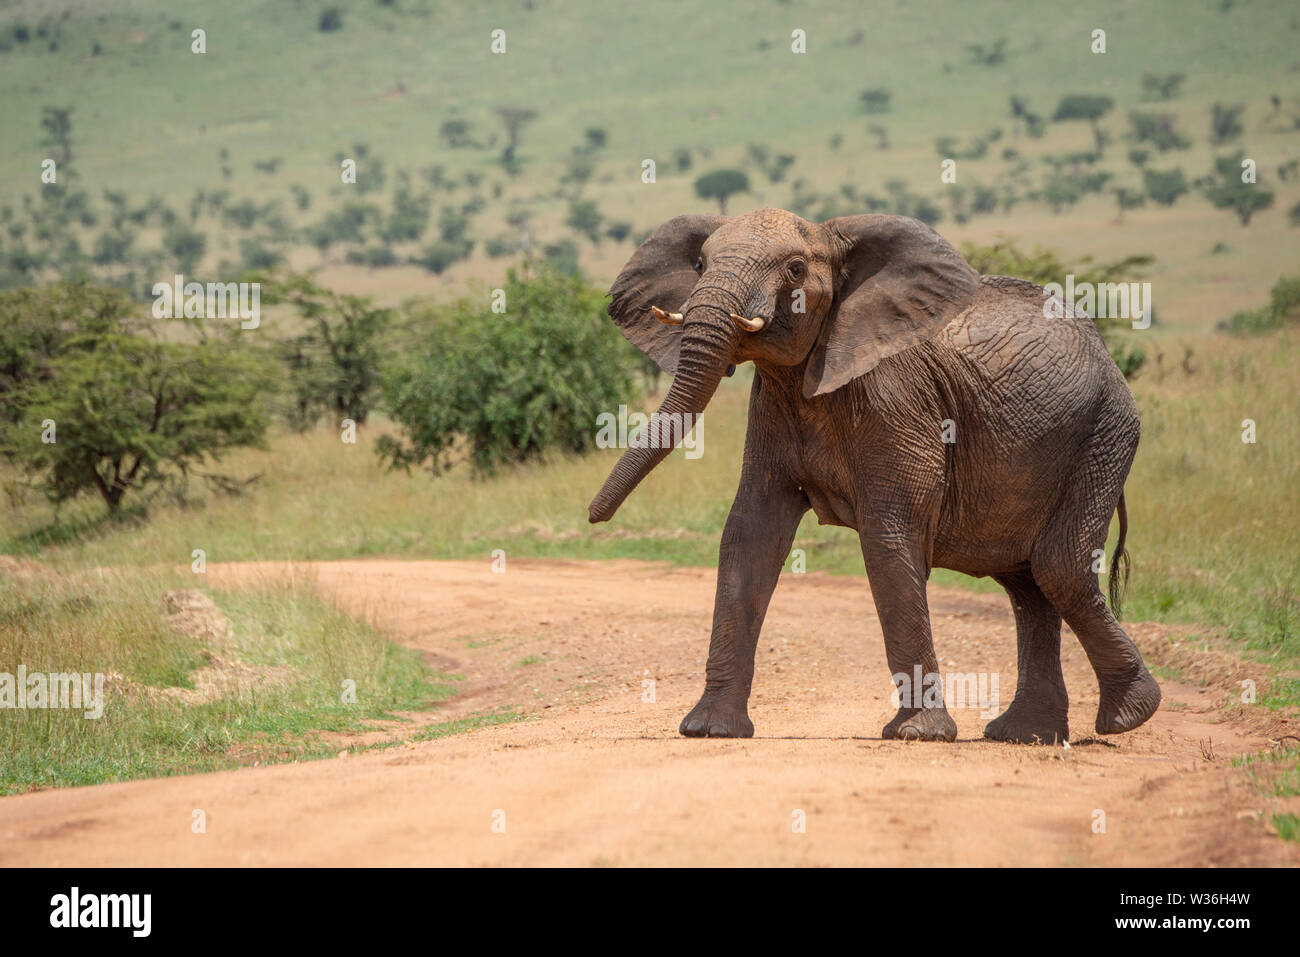 African elephant stands on track lifting head - Stock Image